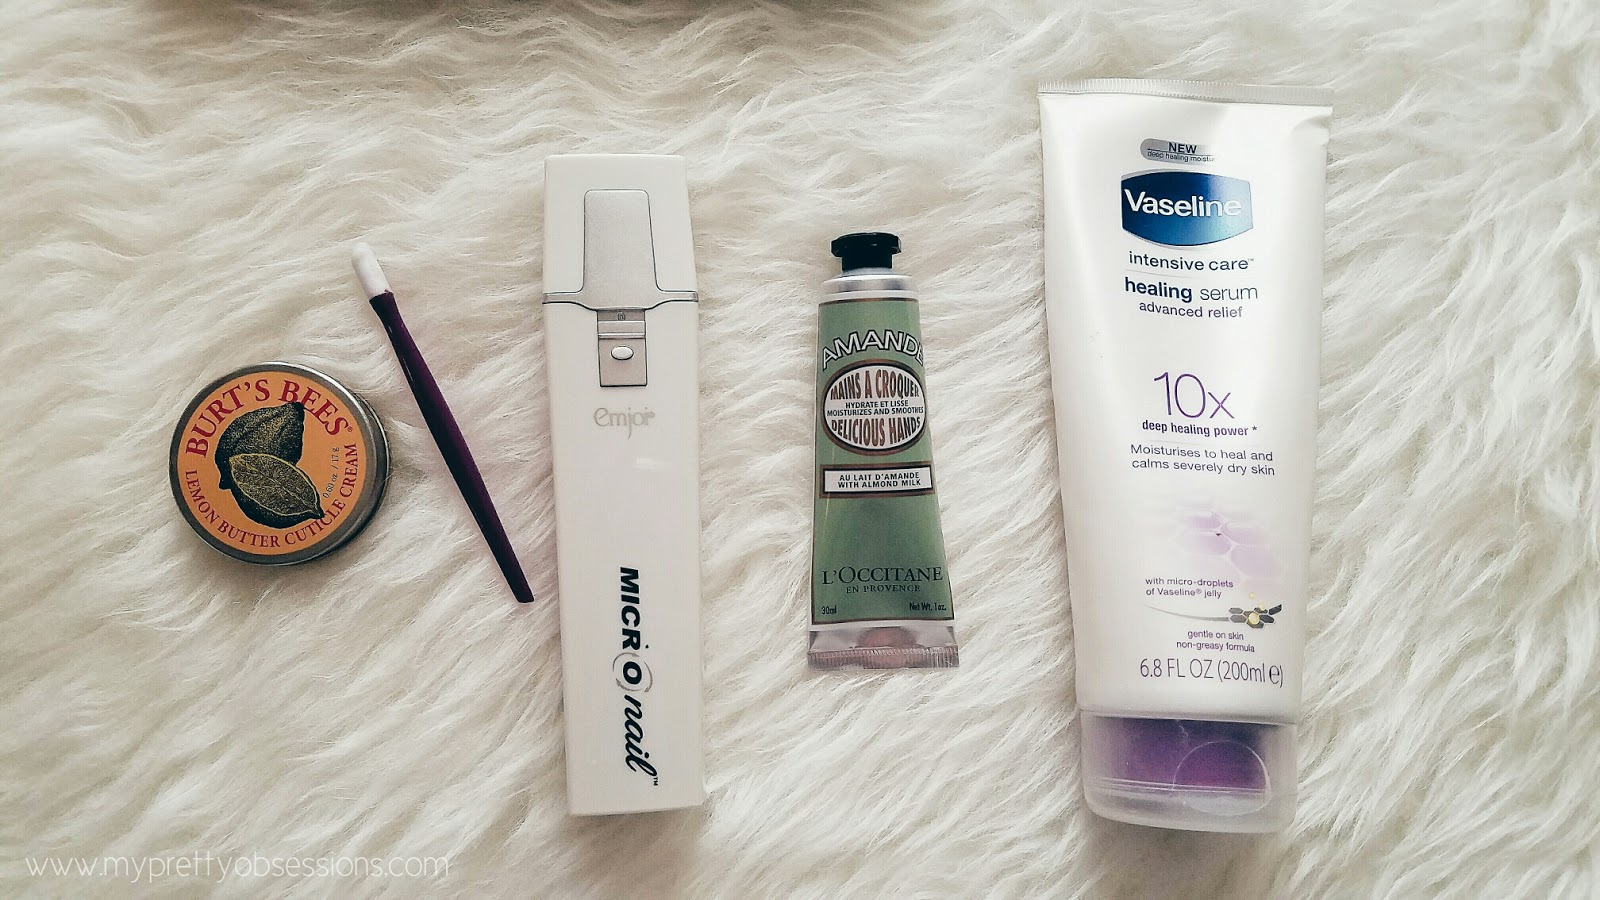 My Pretty Obsessions | Dallas Fort Worth Beauty Blog: December 2016